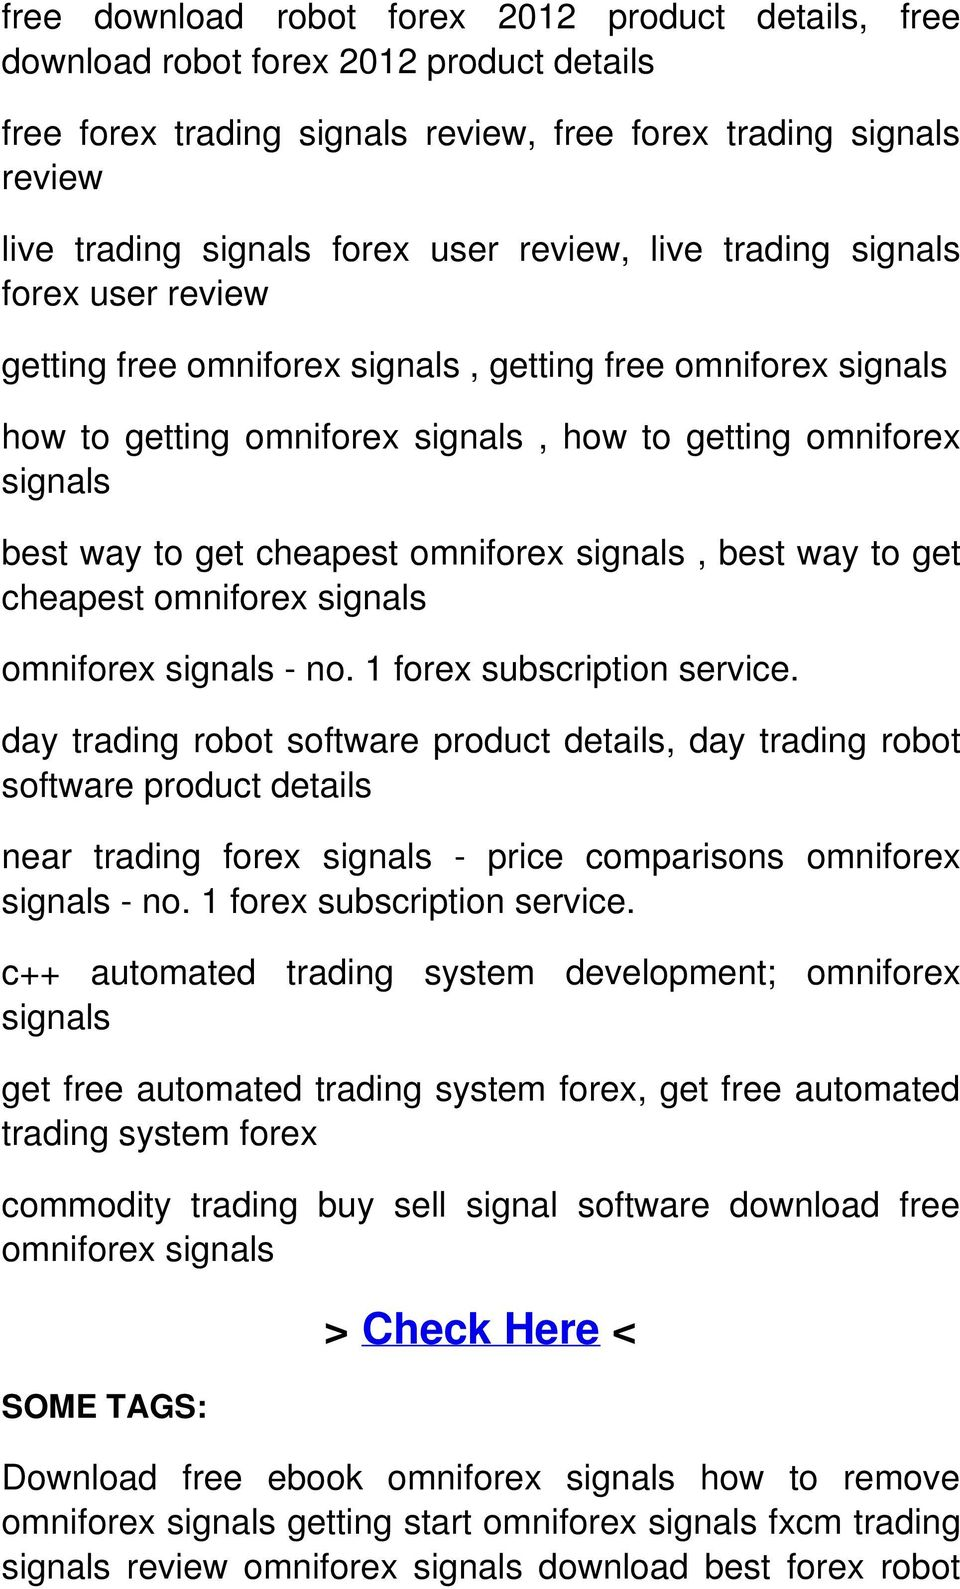 1 forex subscription service. day trading robot software product details, day trading robot software product details near trading forex - price comparisons omniforex - no.